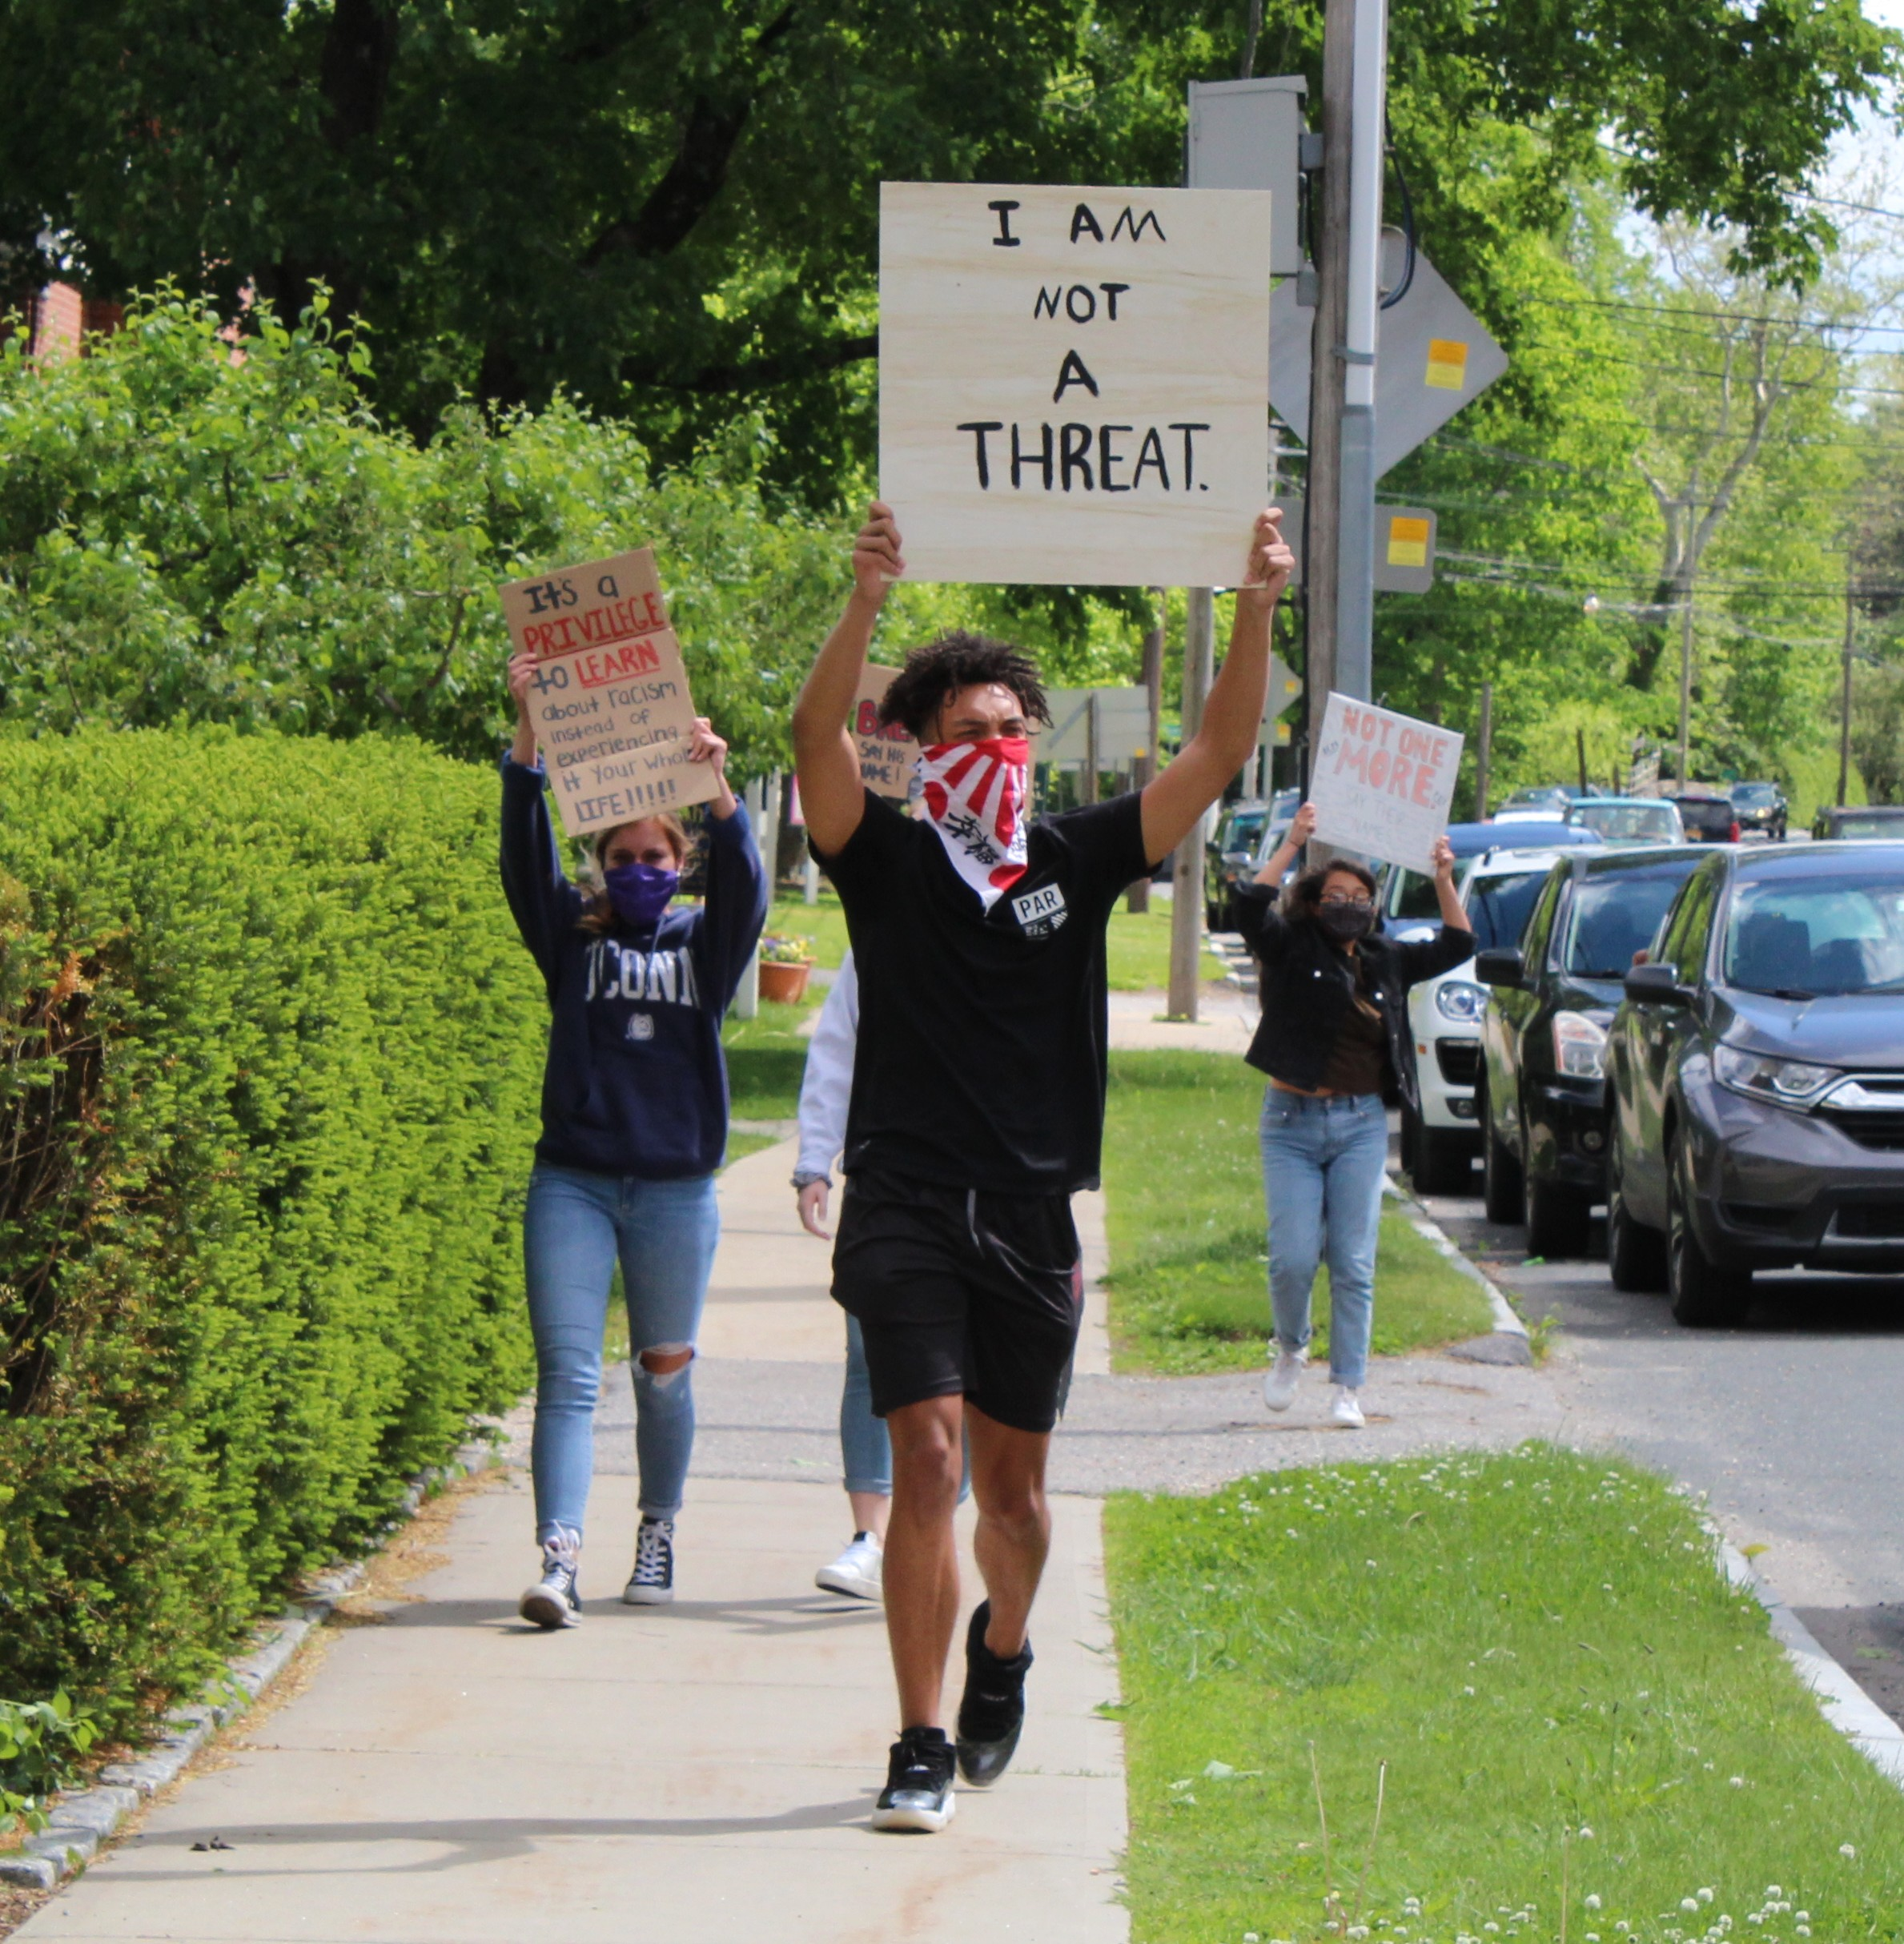 <strong>The youth-led protest brought out residents of all ages to fill the Salisbury Green on Sunday, May 31, in a peaceful demonstration against police brutality and the homicide of George Floyd in Minneapolis, Minn.<em>Photo by Patrick L Sullivan</em></strong>